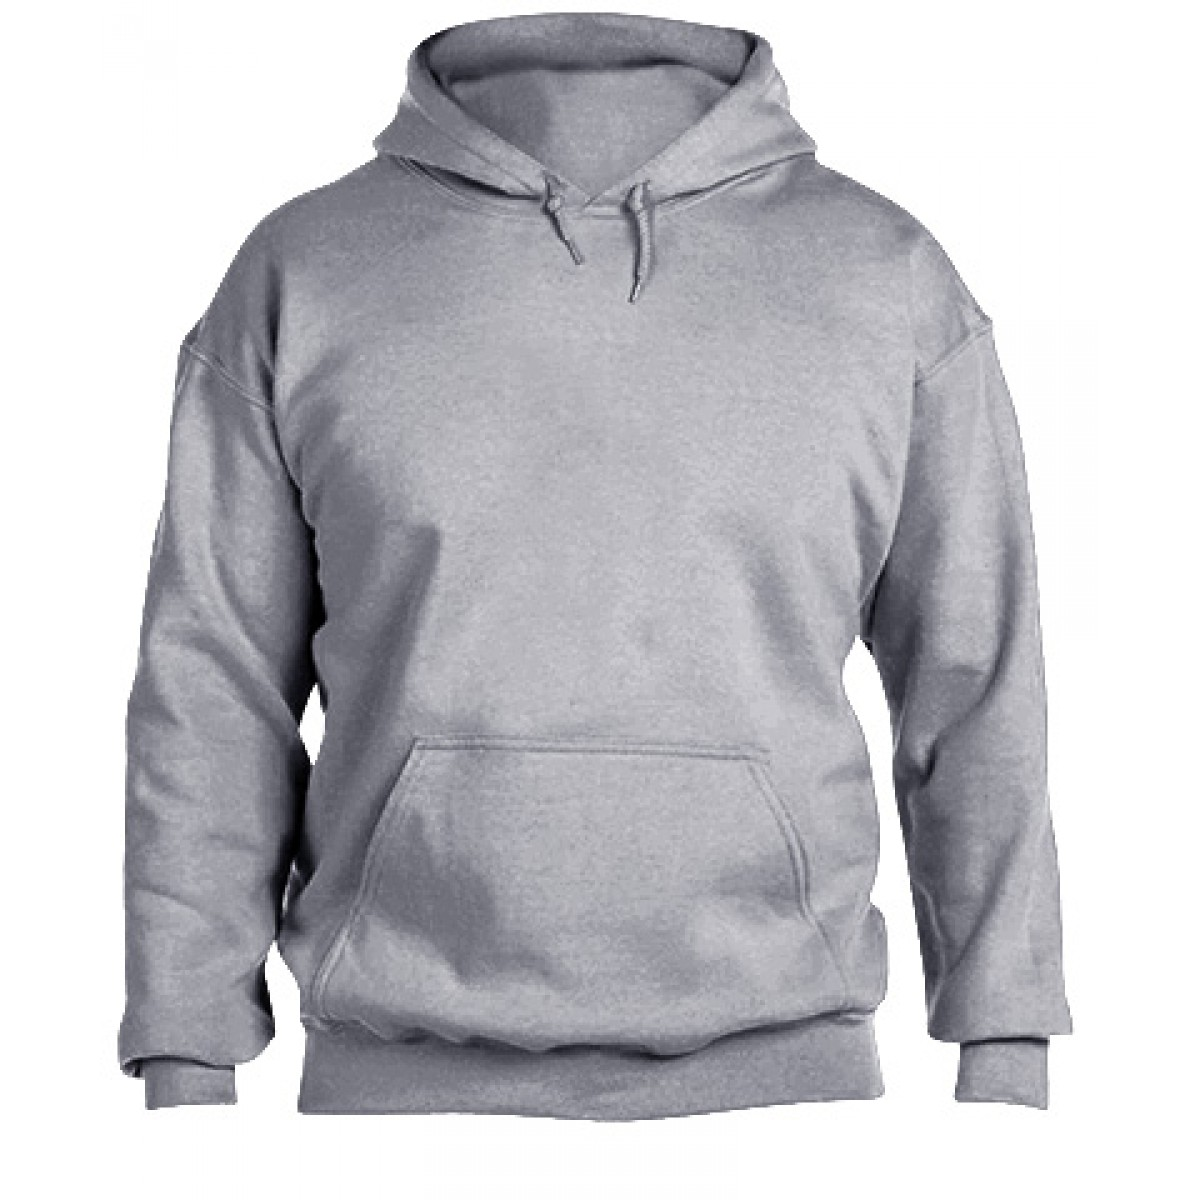 Hooded Sweatshirt 50/50 Heavy Blend-Sports Grey-YS